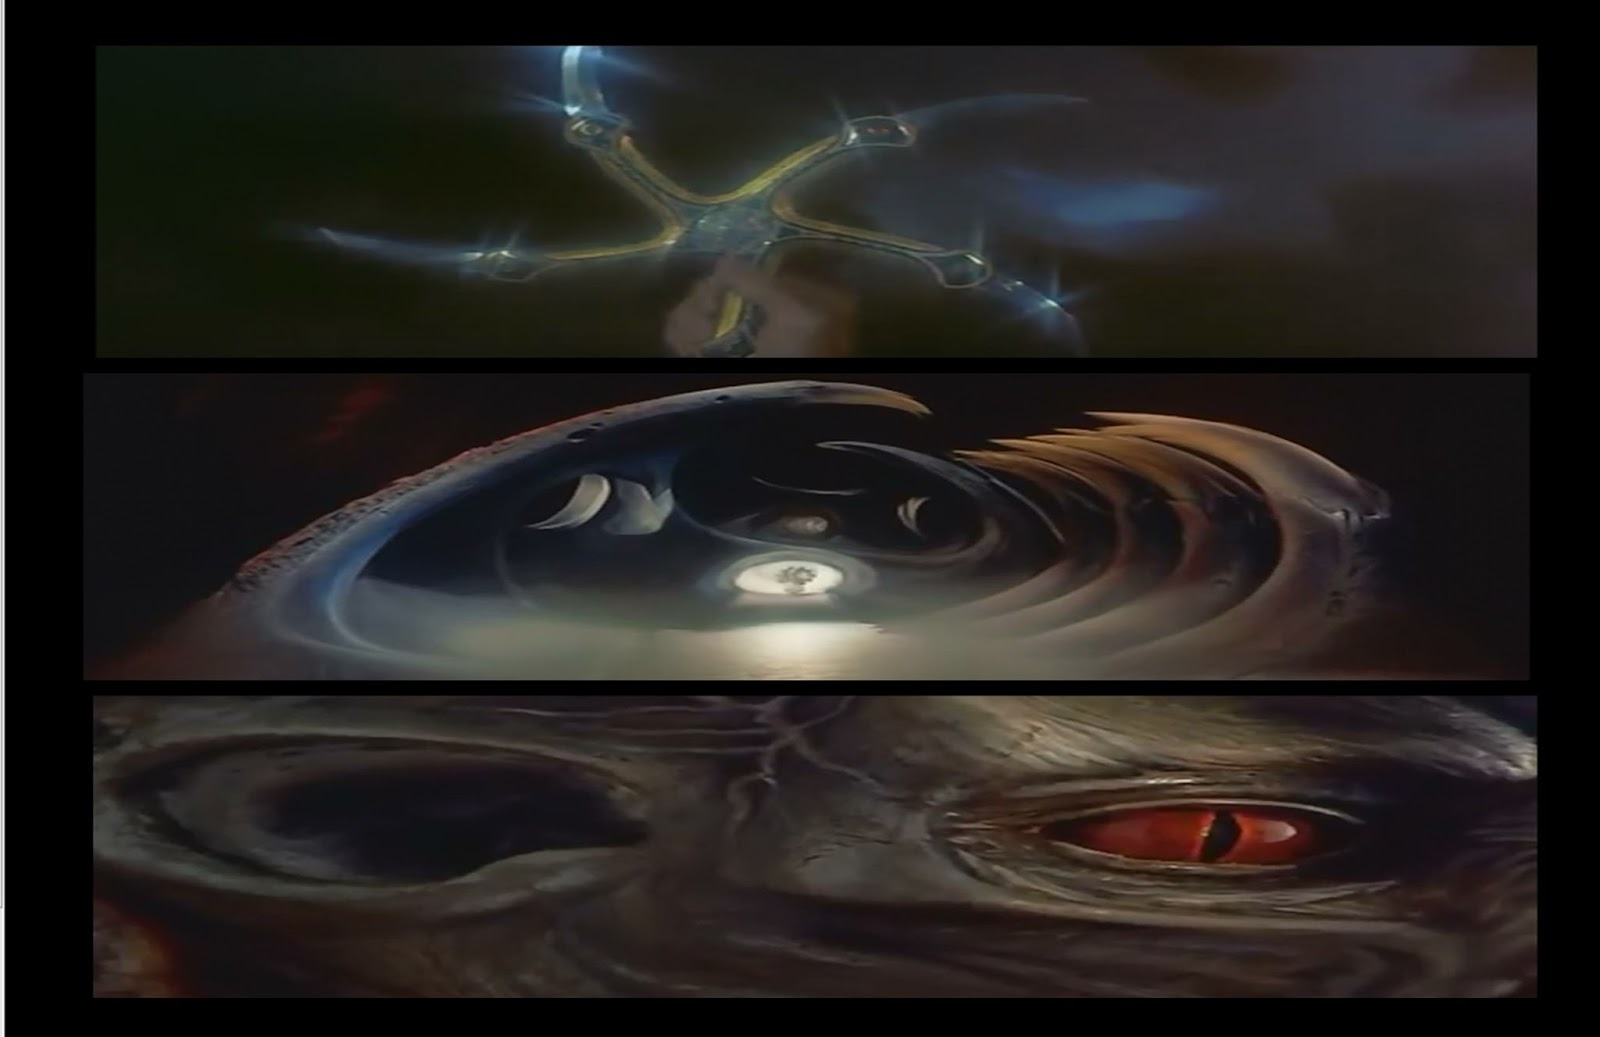 Pentagram and one all seeing eye symbolism in krull movie true pentagram and one all seeing eye symbolism in krull movie biocorpaavc